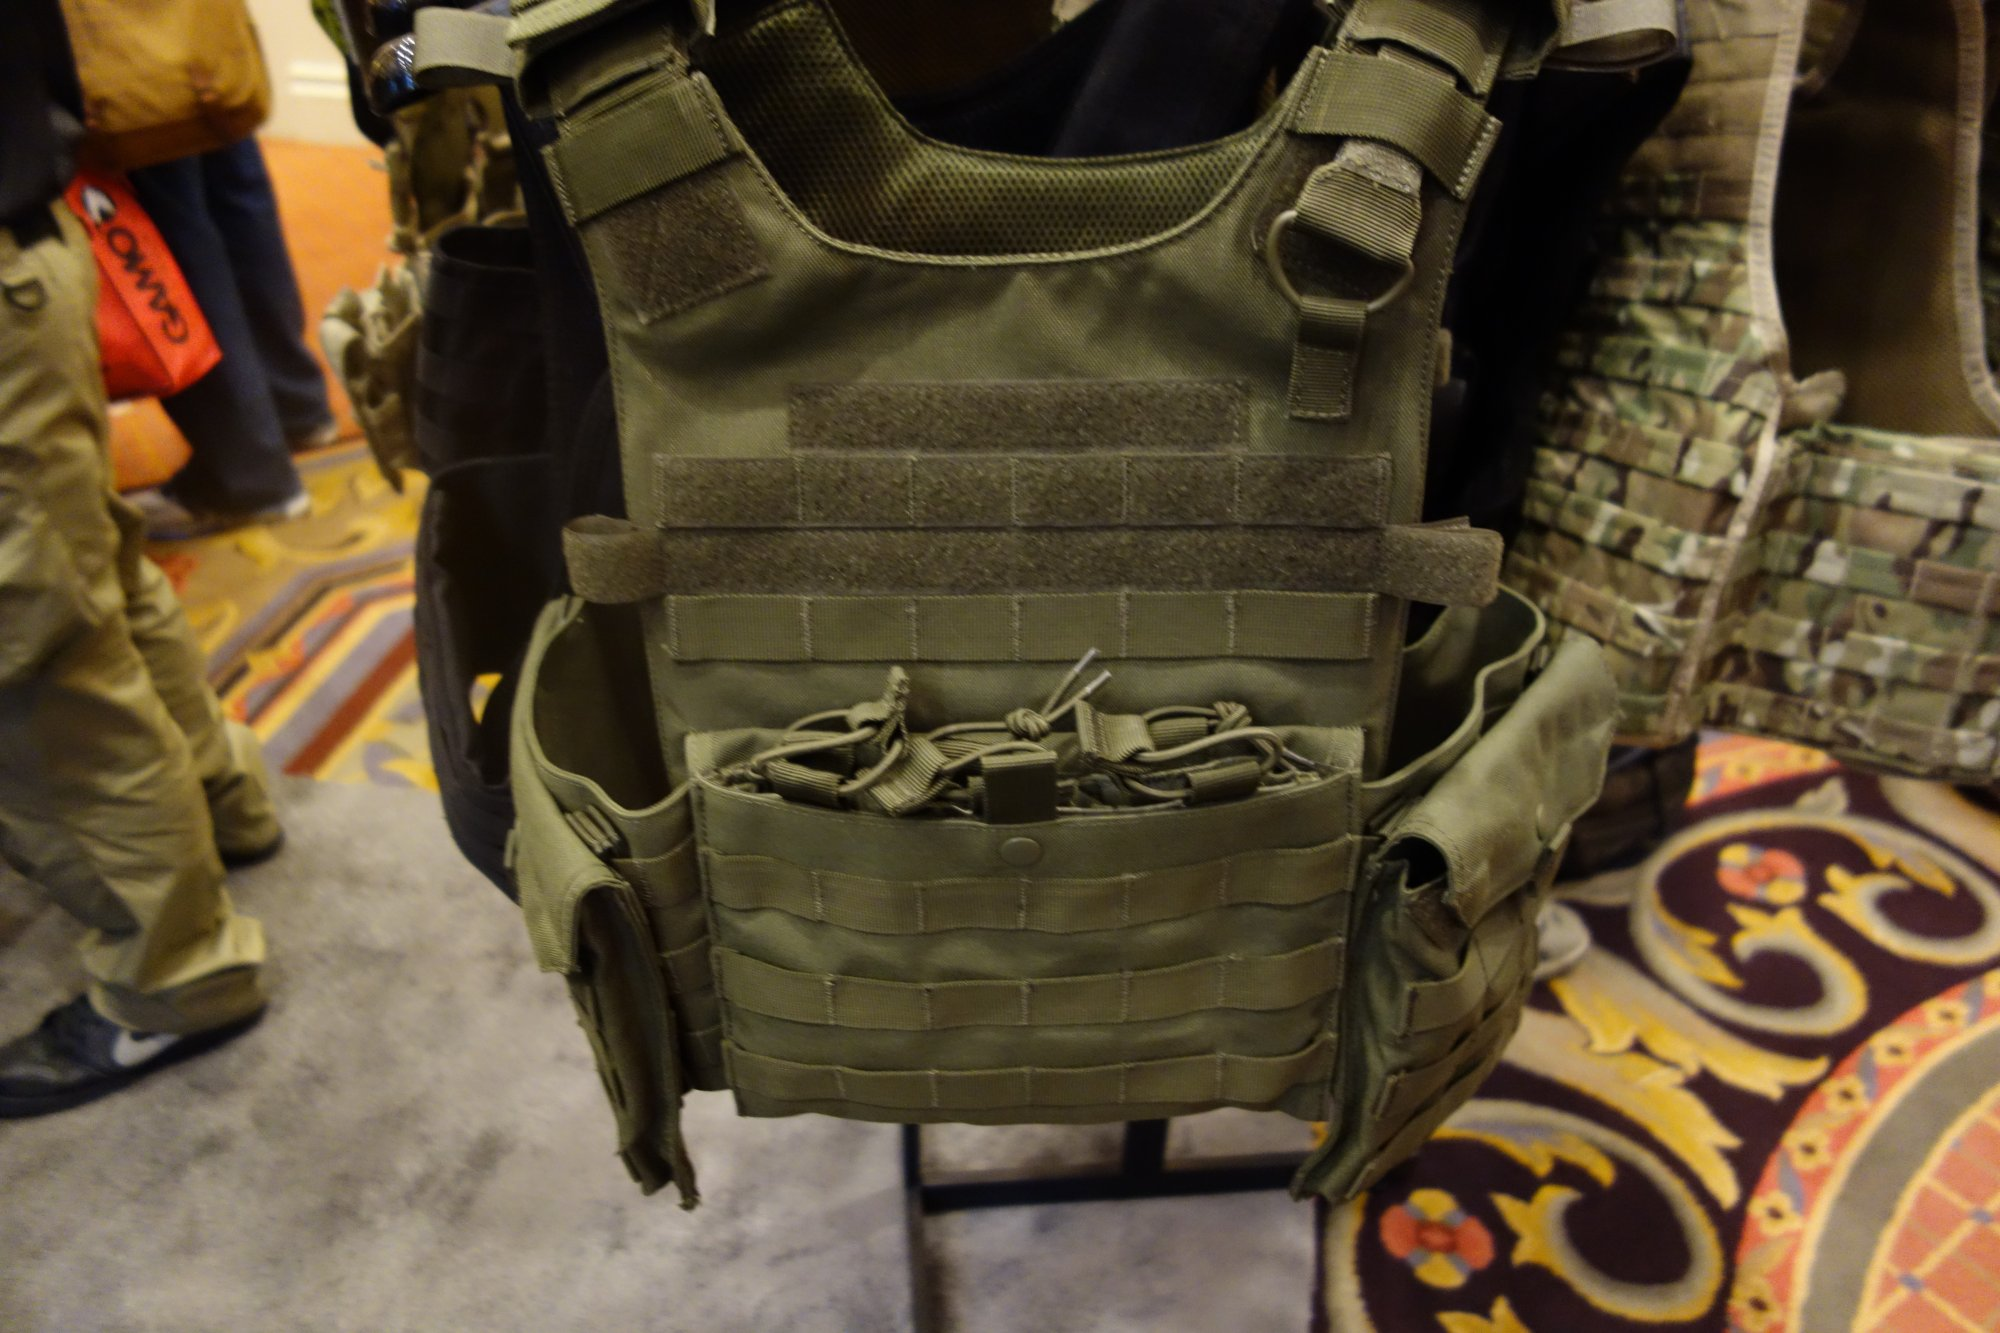 Condor Gunner Lightweight Plate Carrier Quick Release Tactical Armor Plate Carrier Body Armor Tactical Vest Henry Ko Condor Outdoor Products SHOT Show 2014 David Crane DefenseReview.com DR 1 Condor Gunner Lightweight Plate Carrier: Minimalist Quick Release Tactical Armor Plate Carrier/Tactical Vest (Body Armor) for Tactical Operations